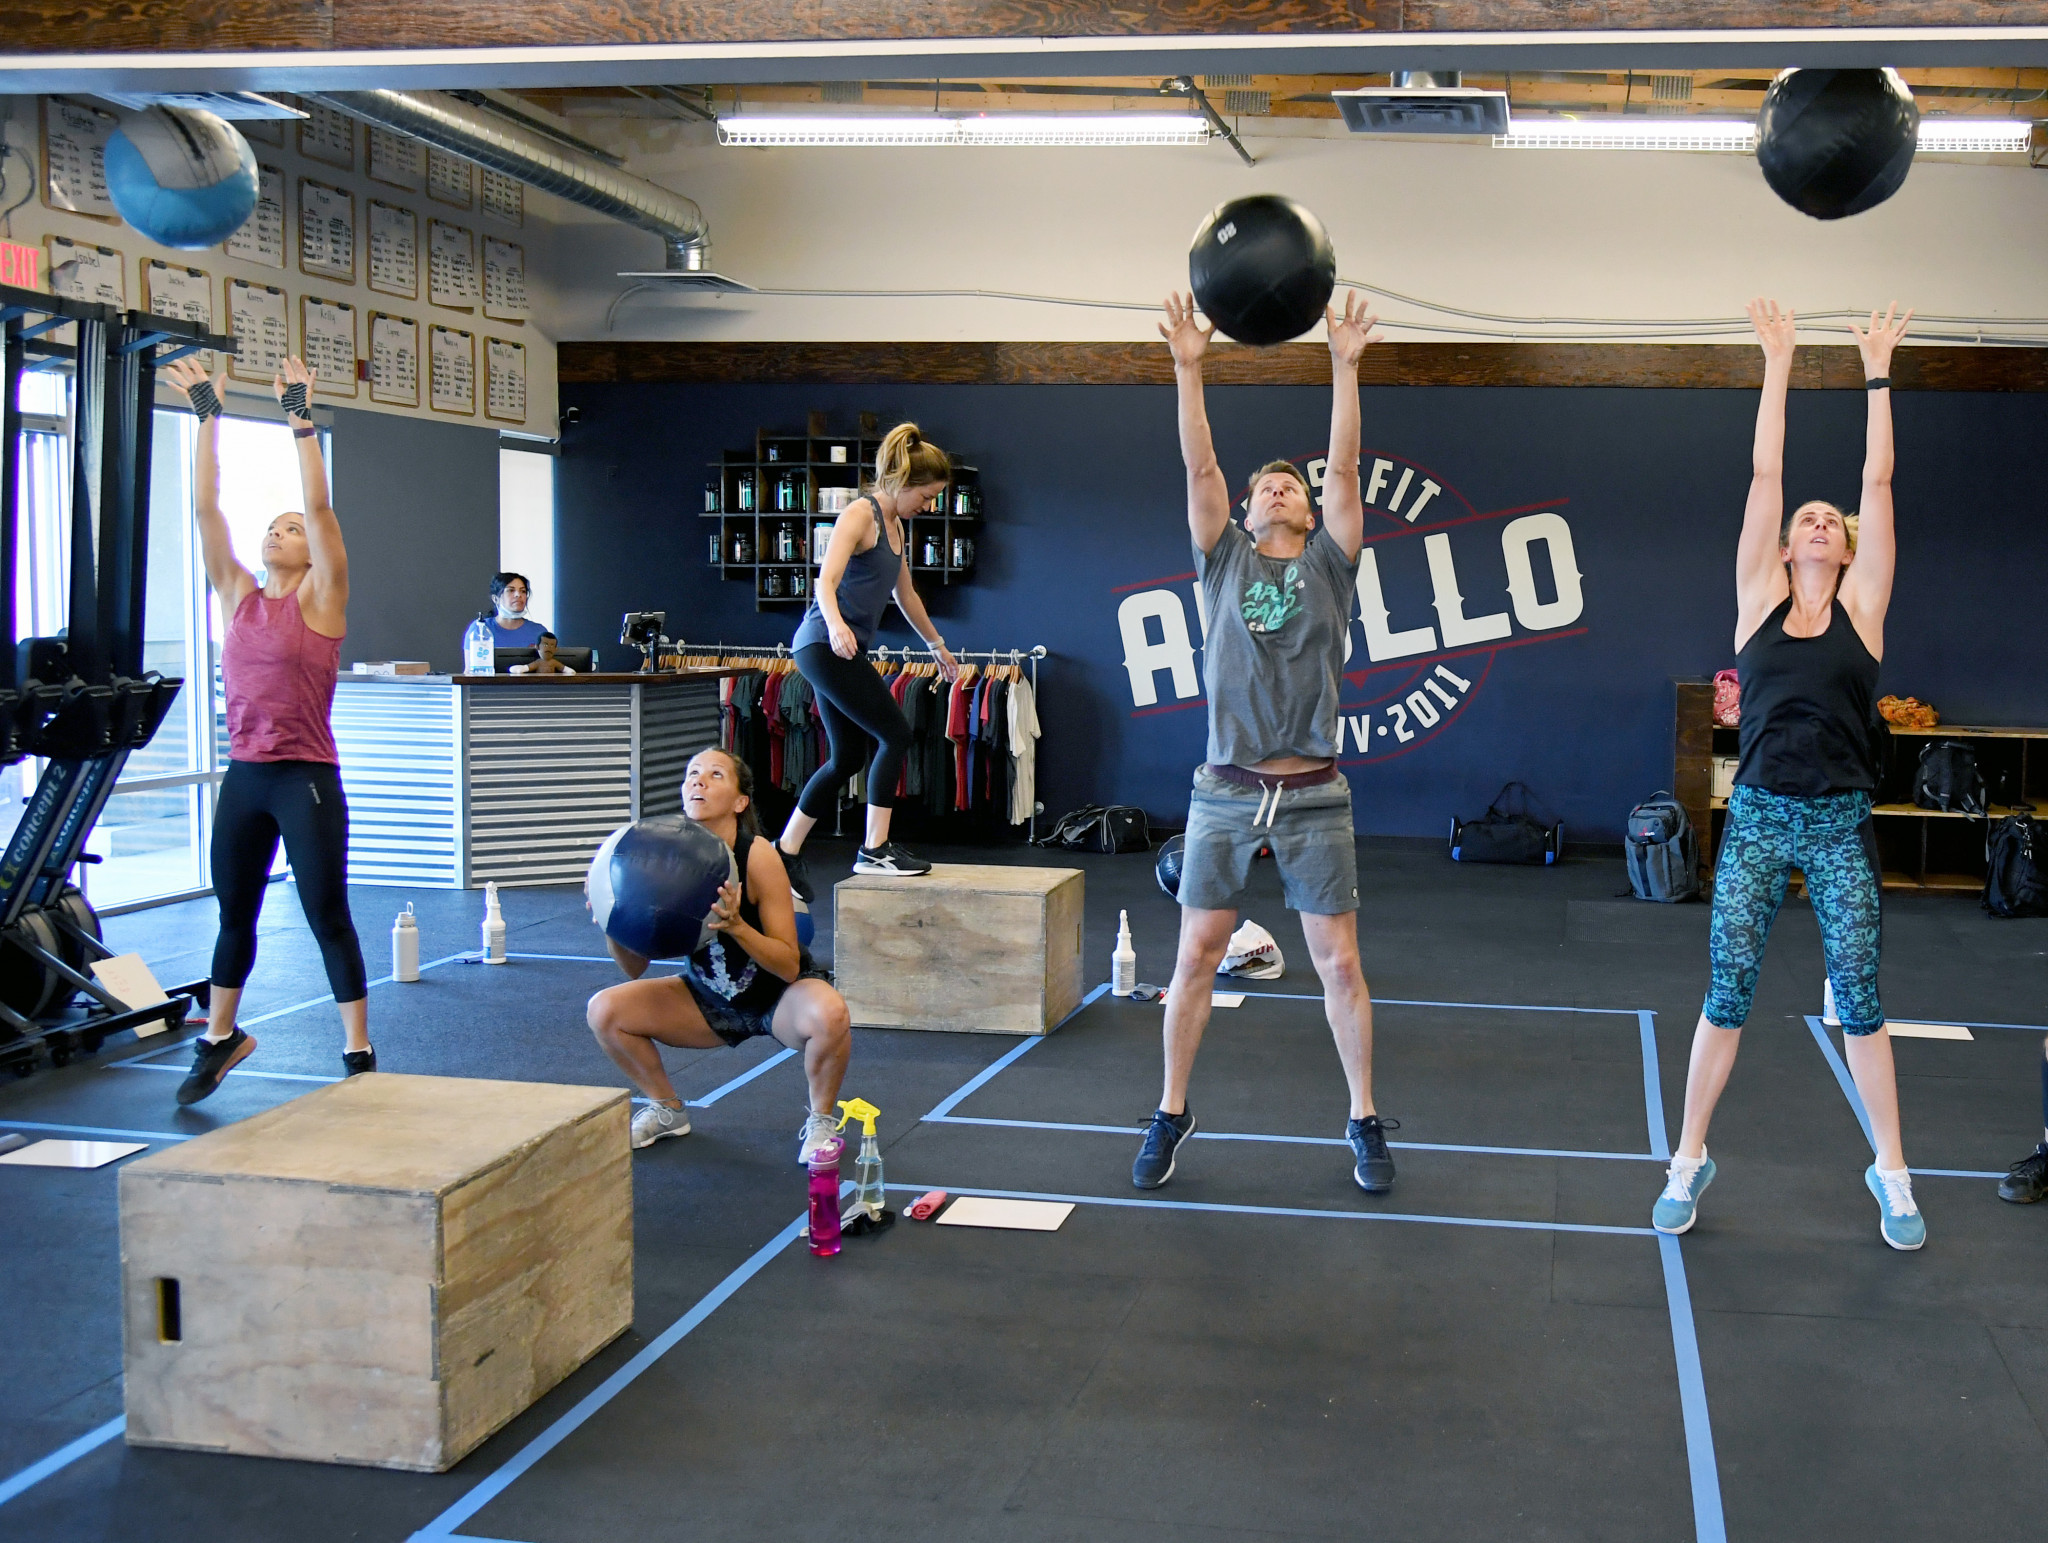 """Reebok drops sponsorship and top stars speak out after CrossFit founder's """"abhorrent"""" comment"""